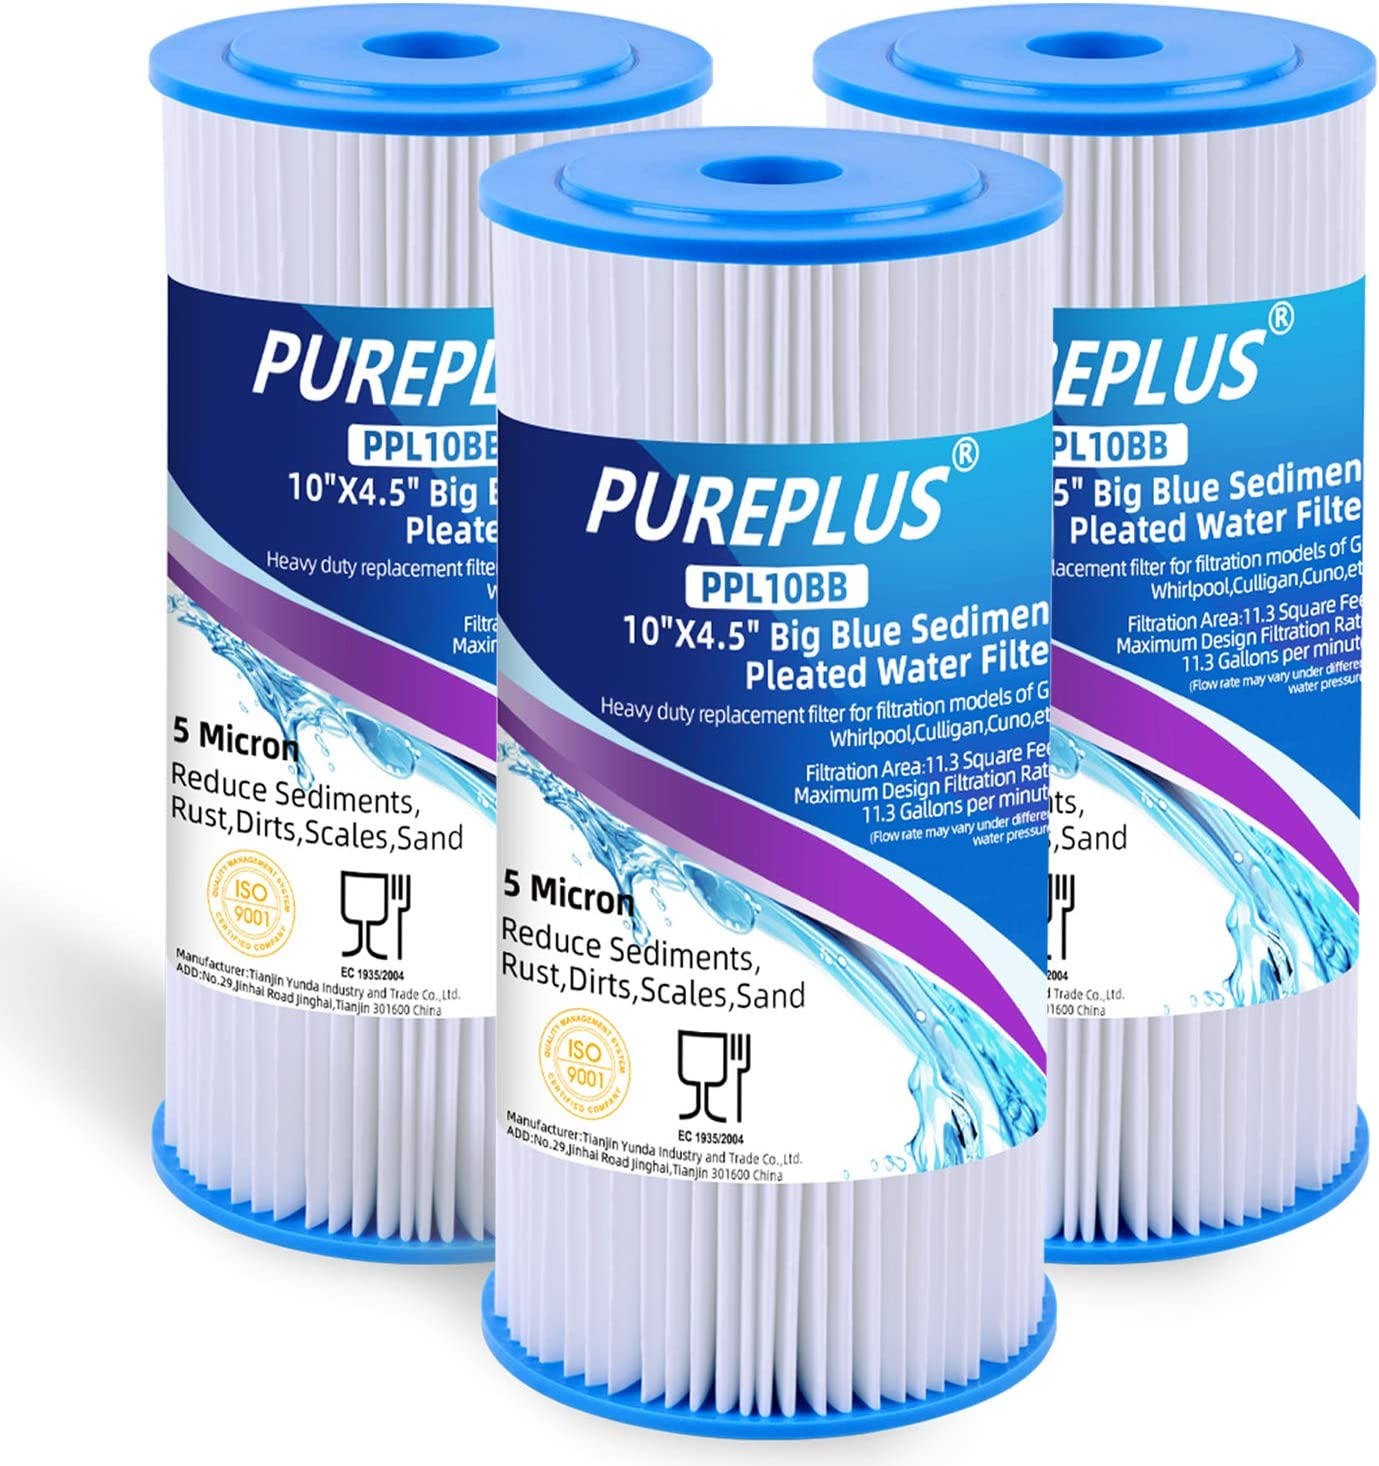 PUREPLUS 5 Micron 3 Pack 10 x 4.5 Pleated Sediment Filter